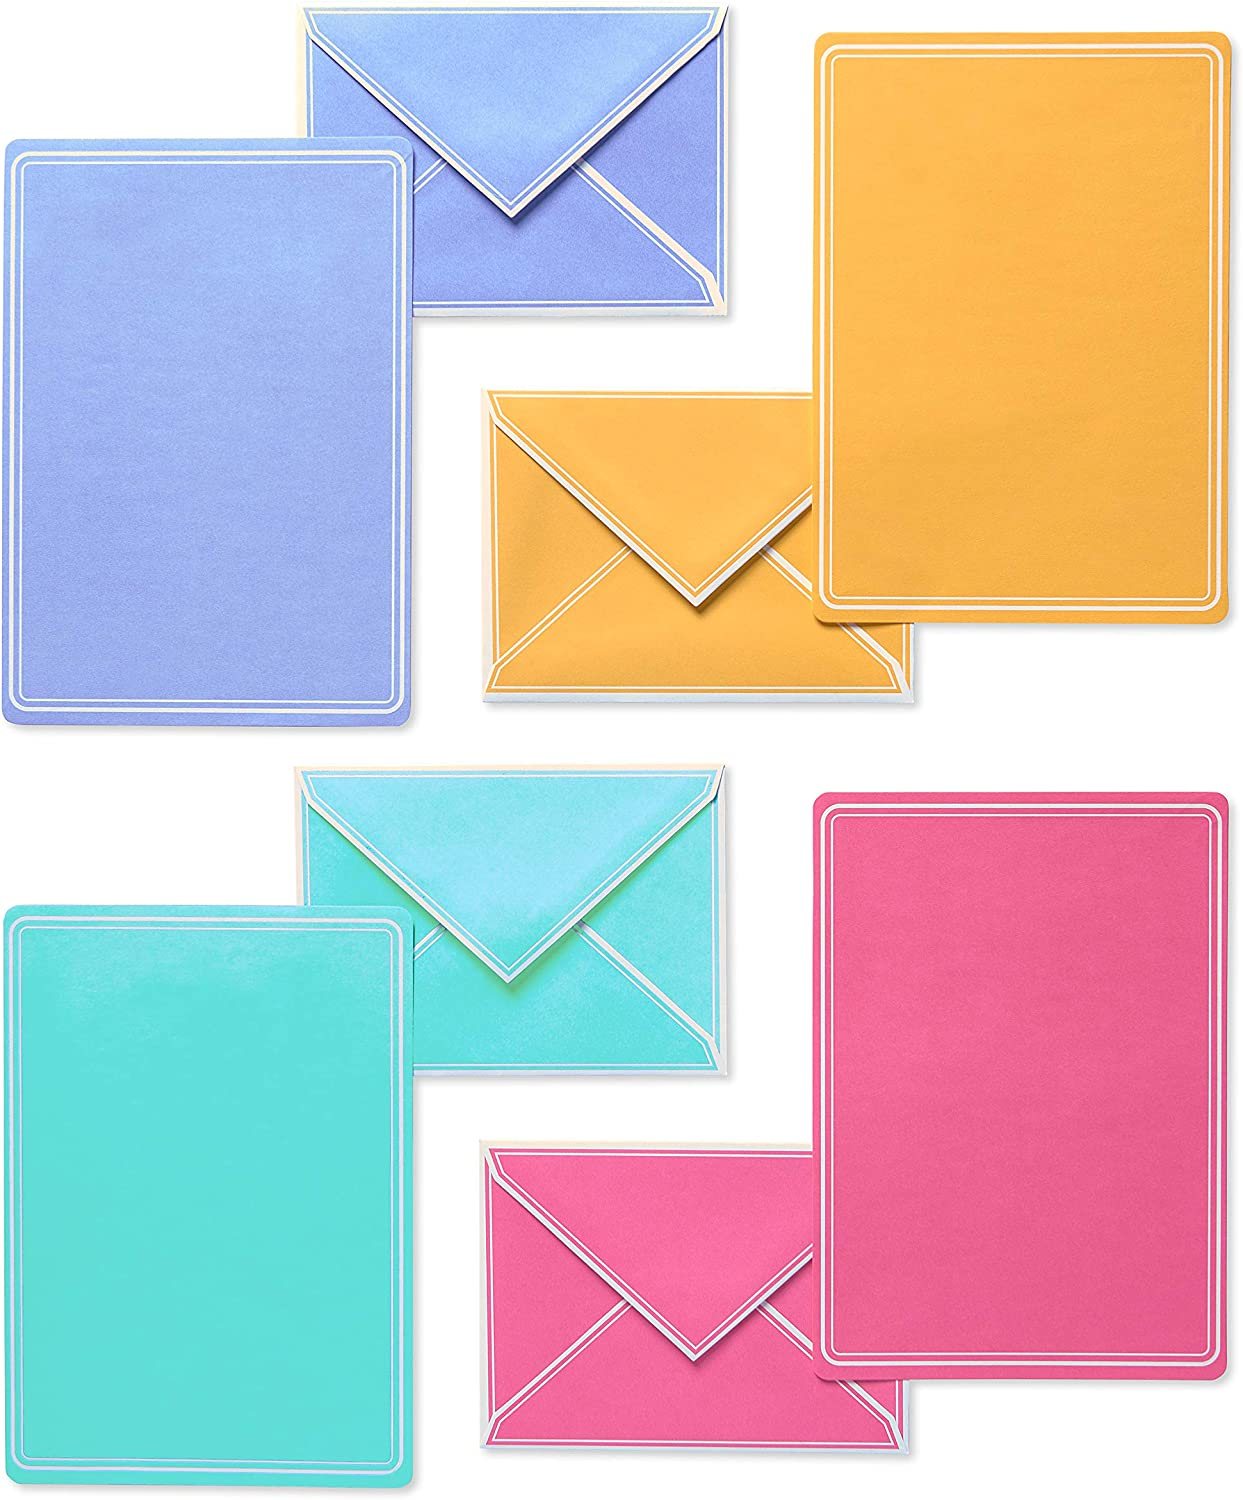 American Greetings Stationery Sheets and Envelopes, Pastel (80-Count)